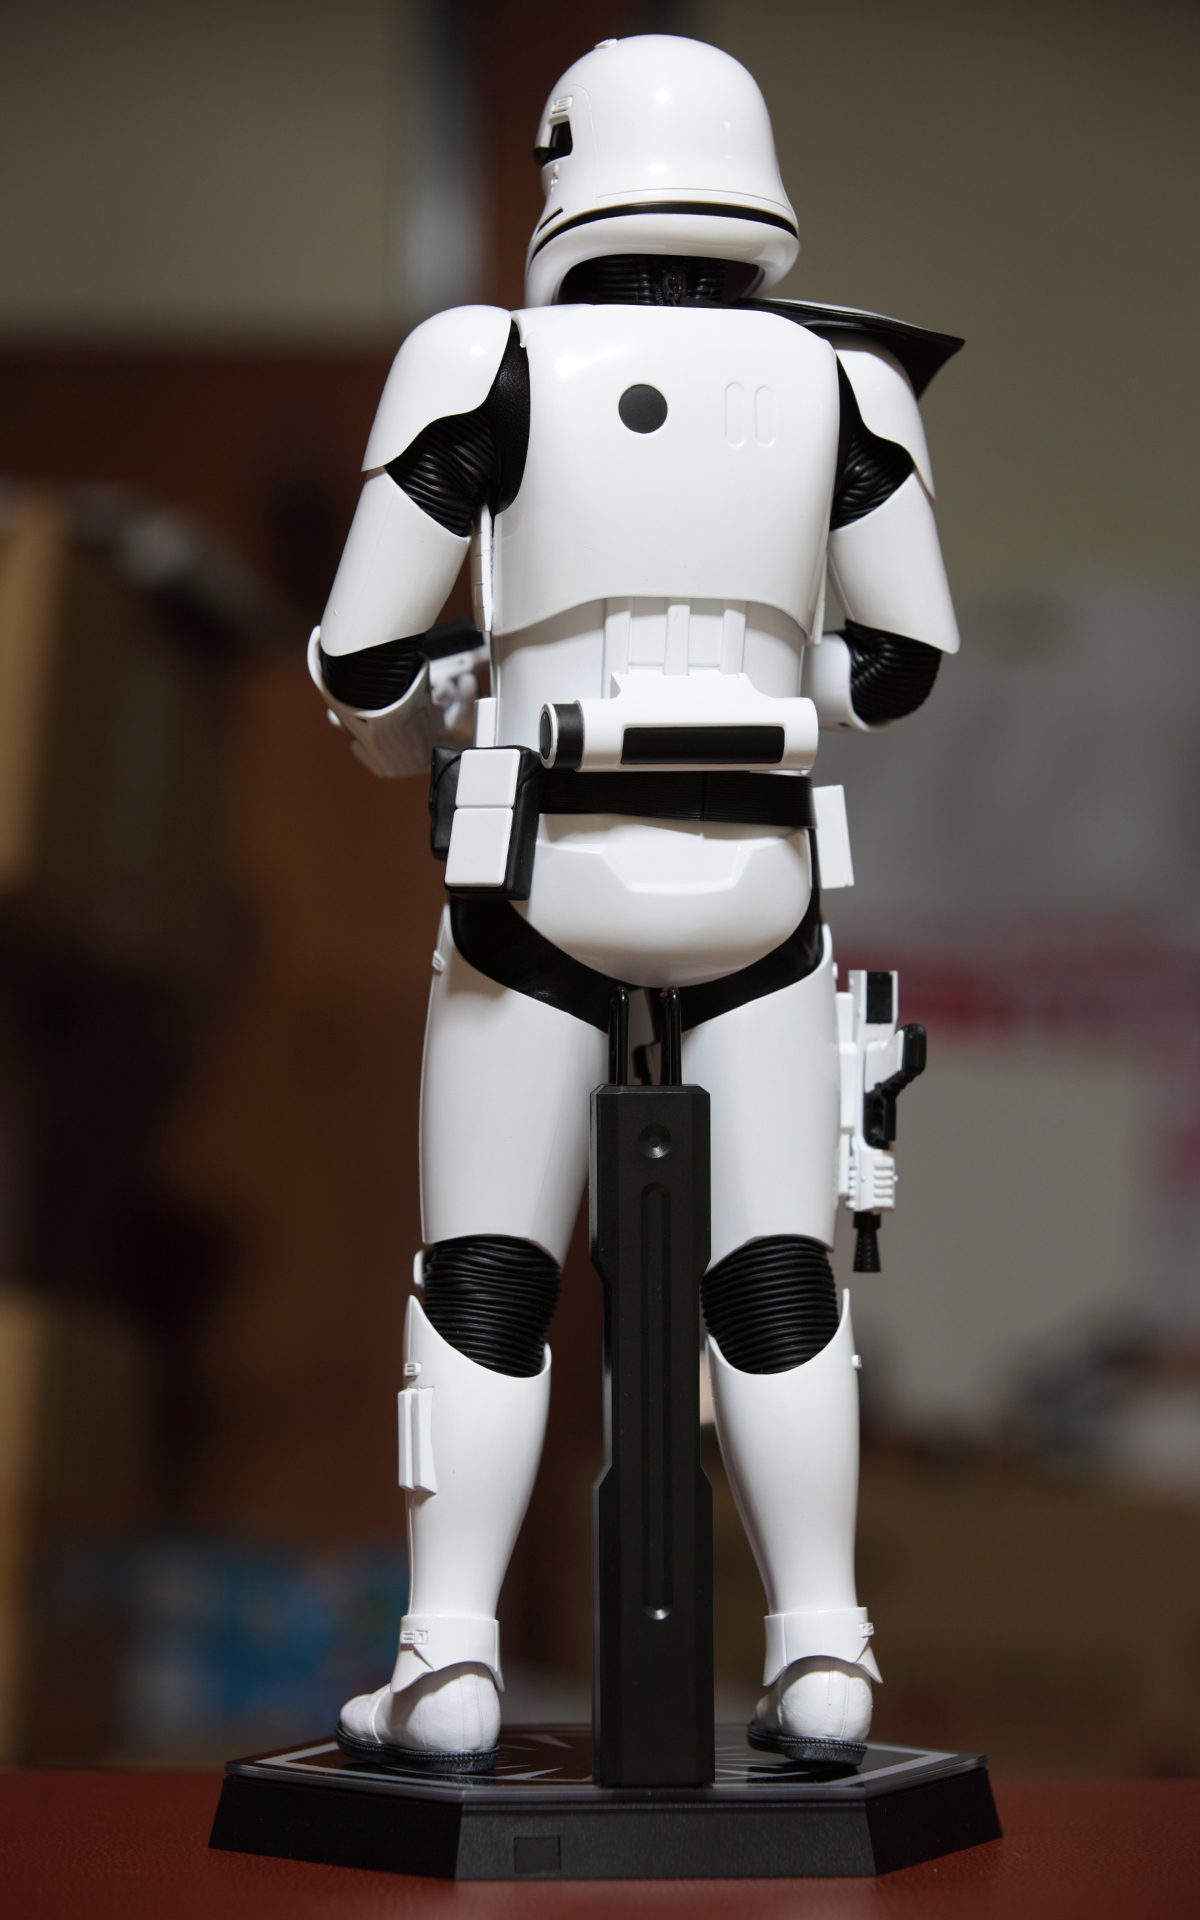 hottoys-star-wars-the-force-awakens-first-order-stormtrooper-Squad-Leader-picture01hottoys-star-wars-the-force-awakens-first-order-stormtrooper-Squad-Leader-picture11